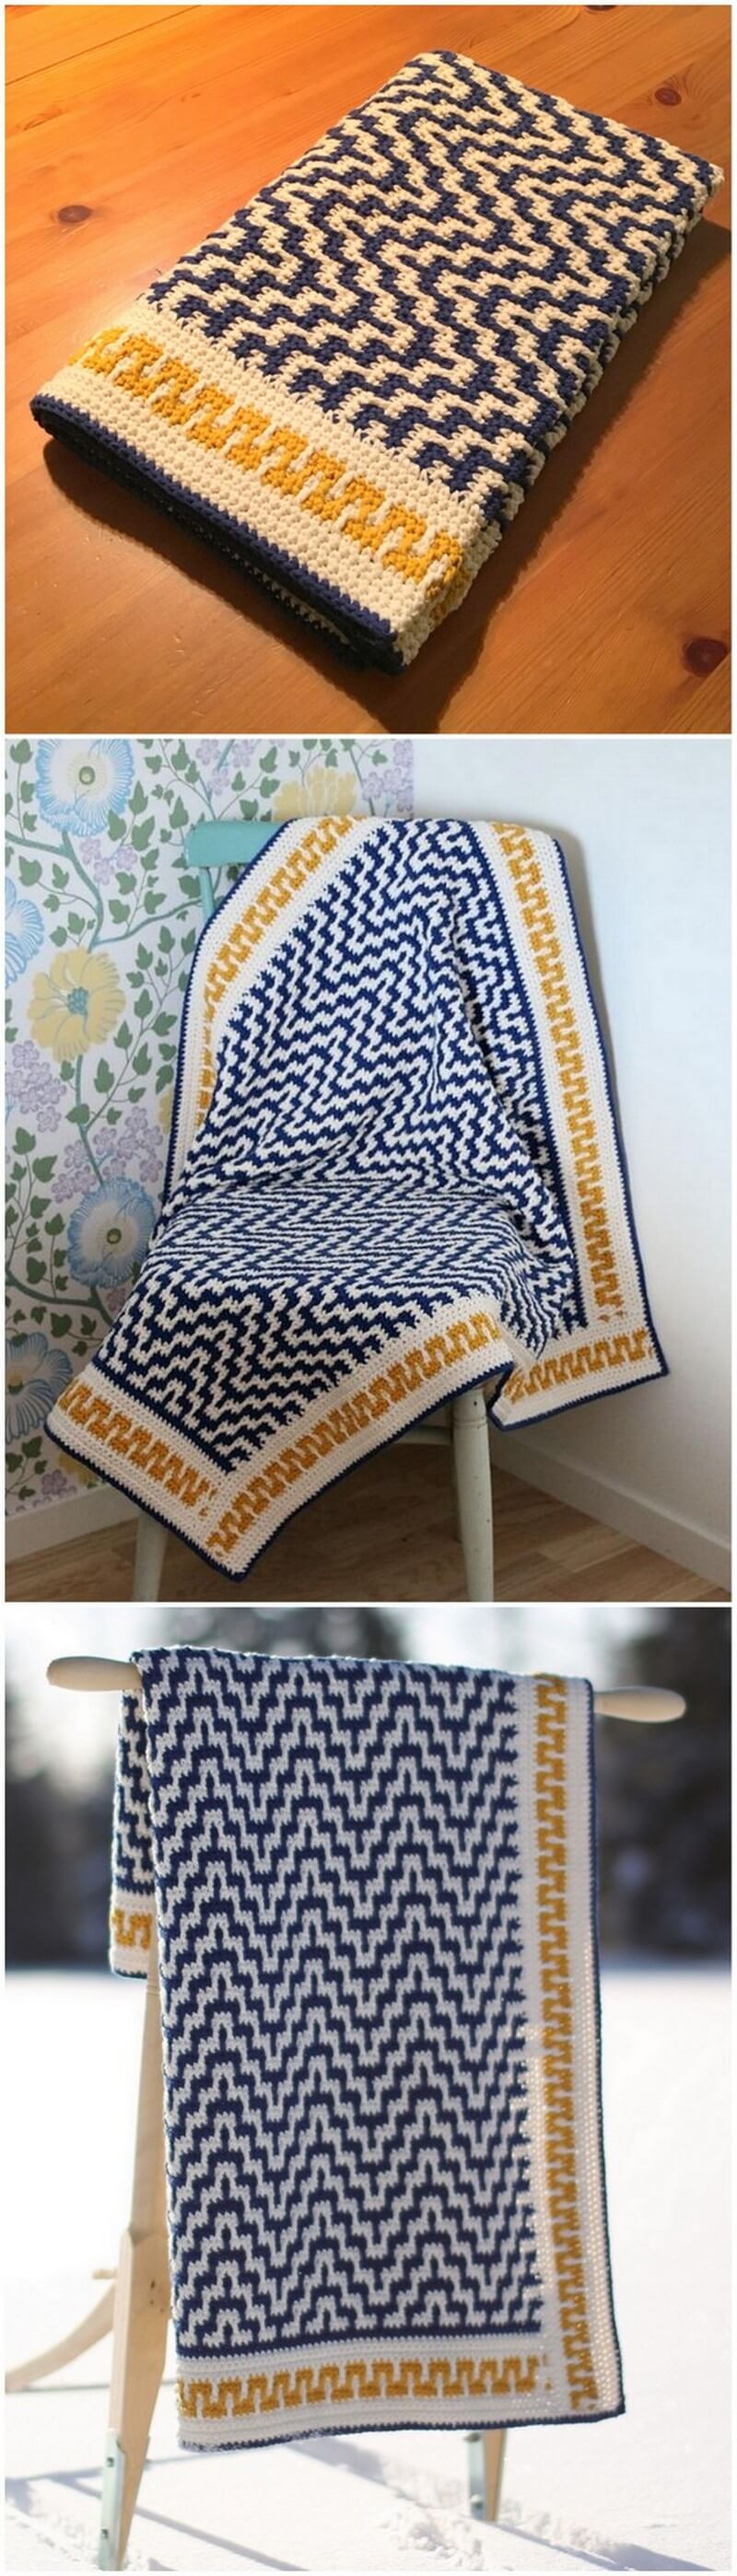 Easy Crochet Blanket Pattern (35)